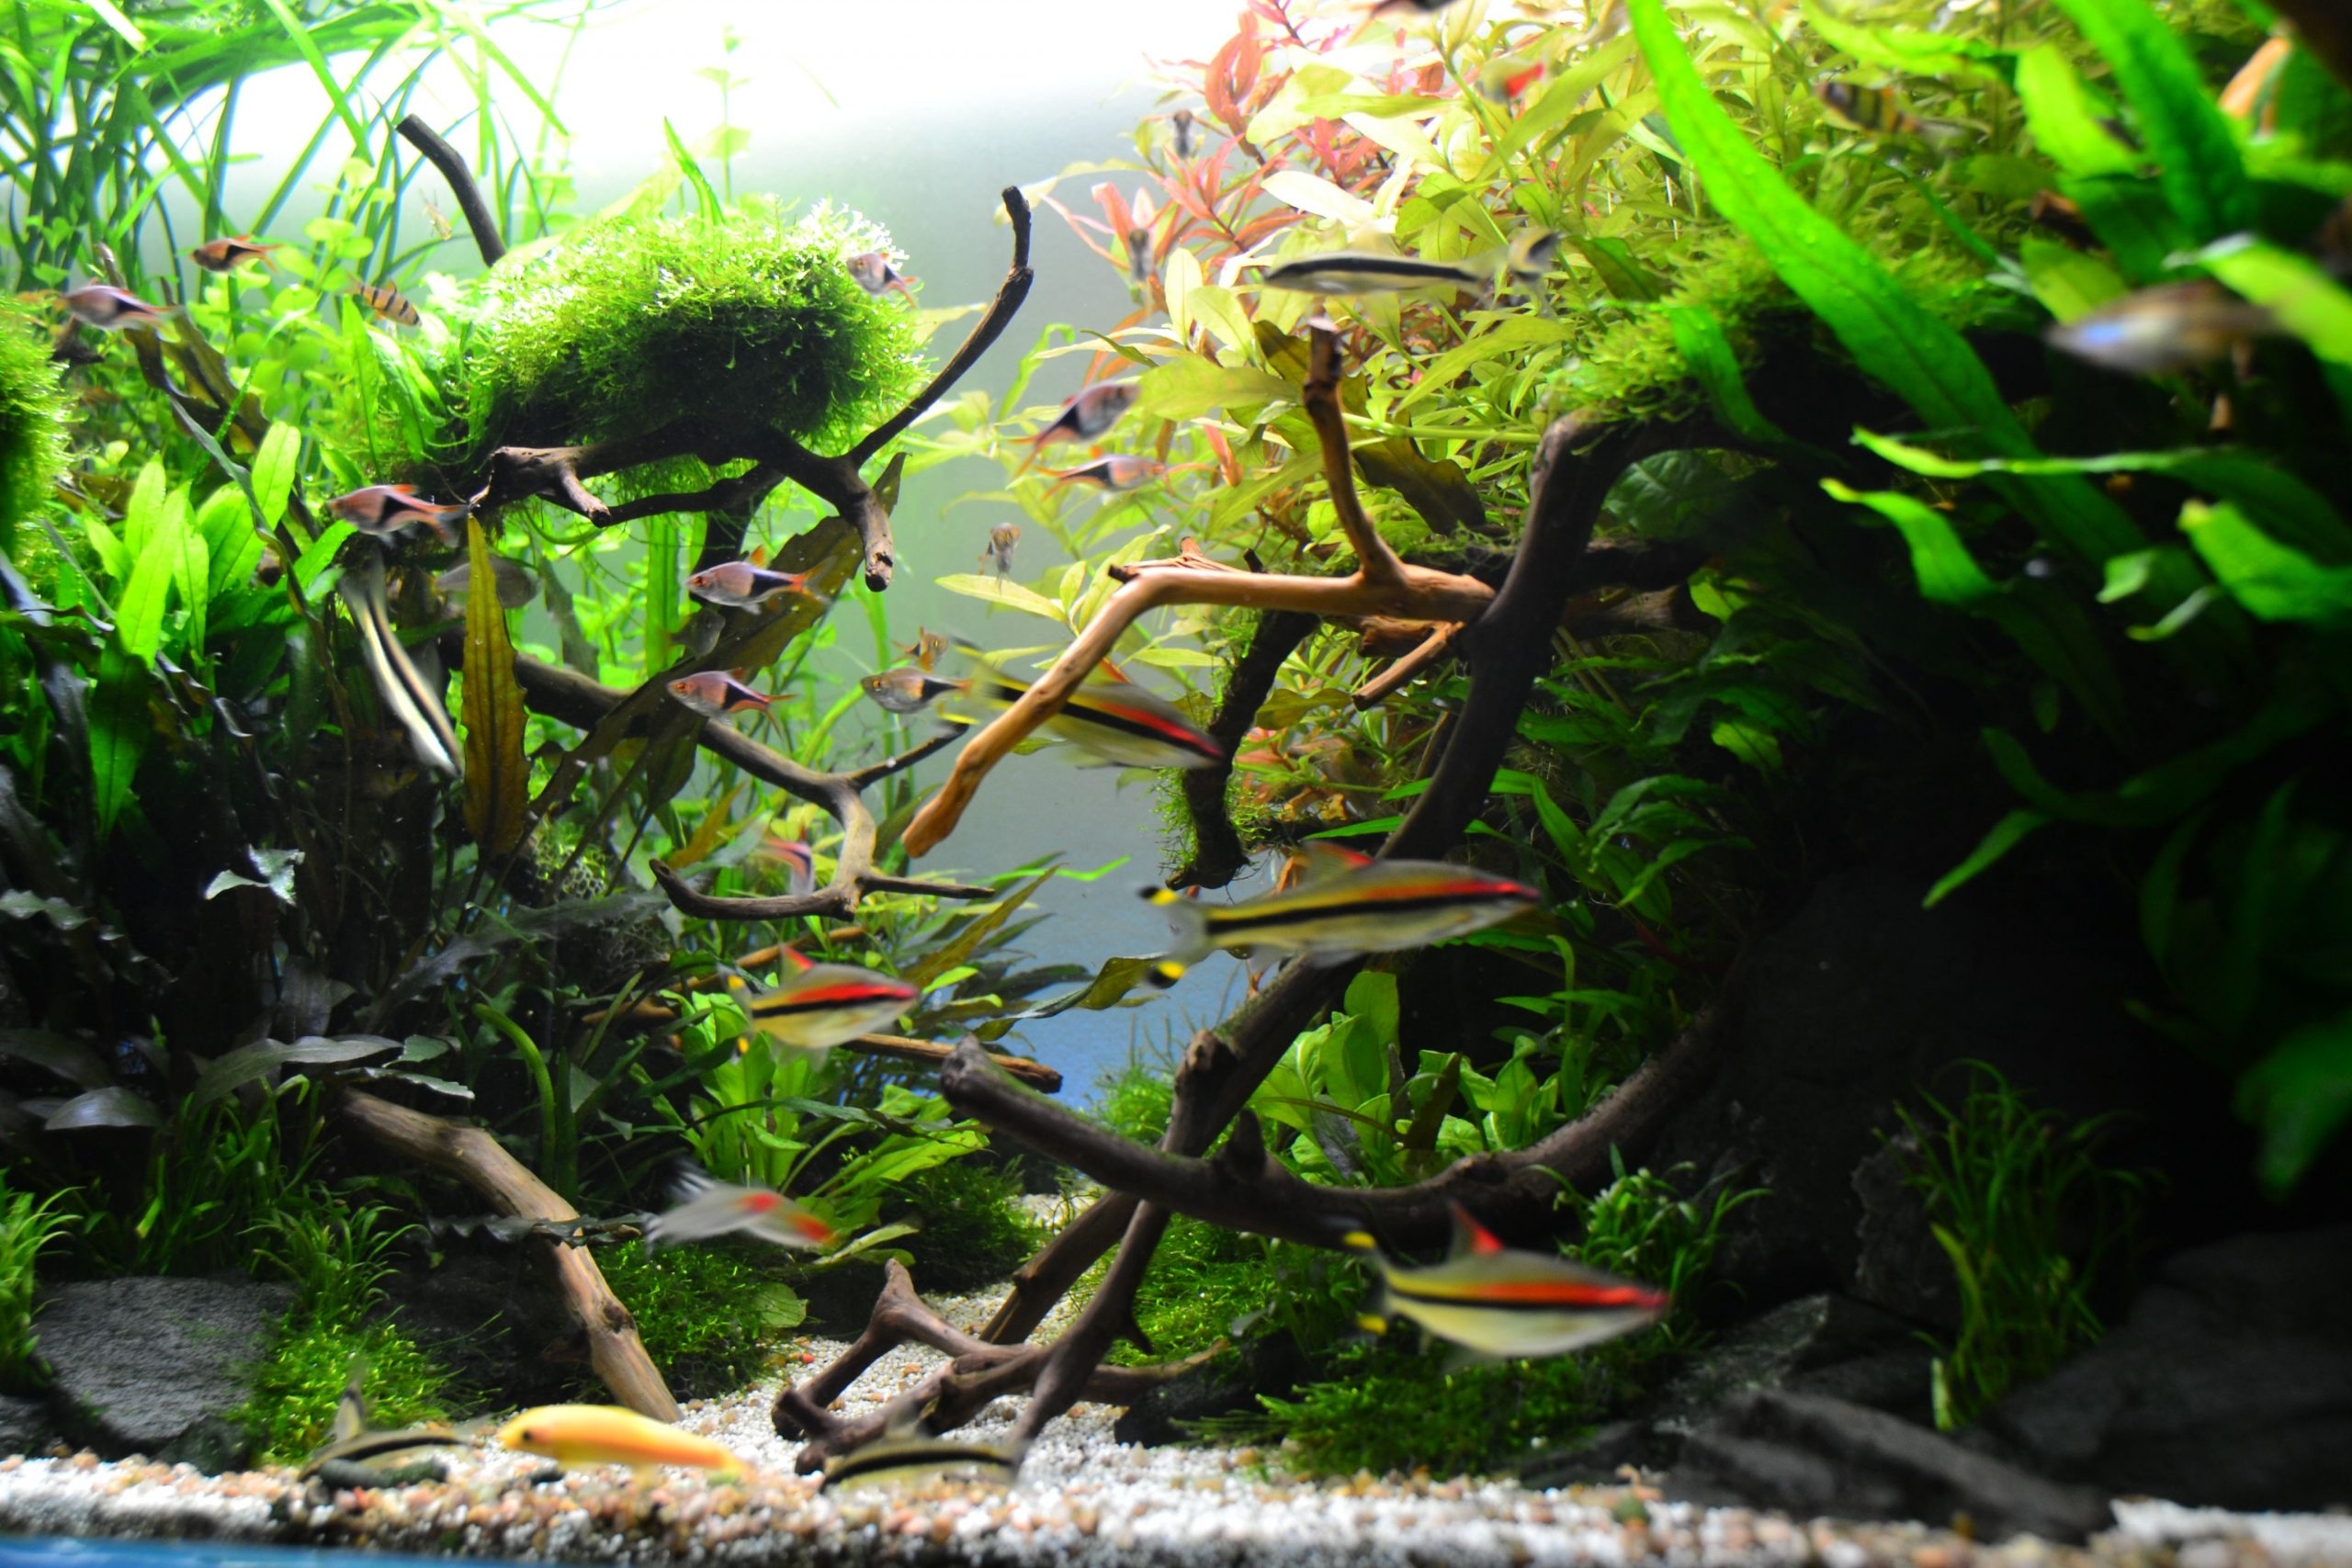 Why Are People Using The Aquarium Plants?